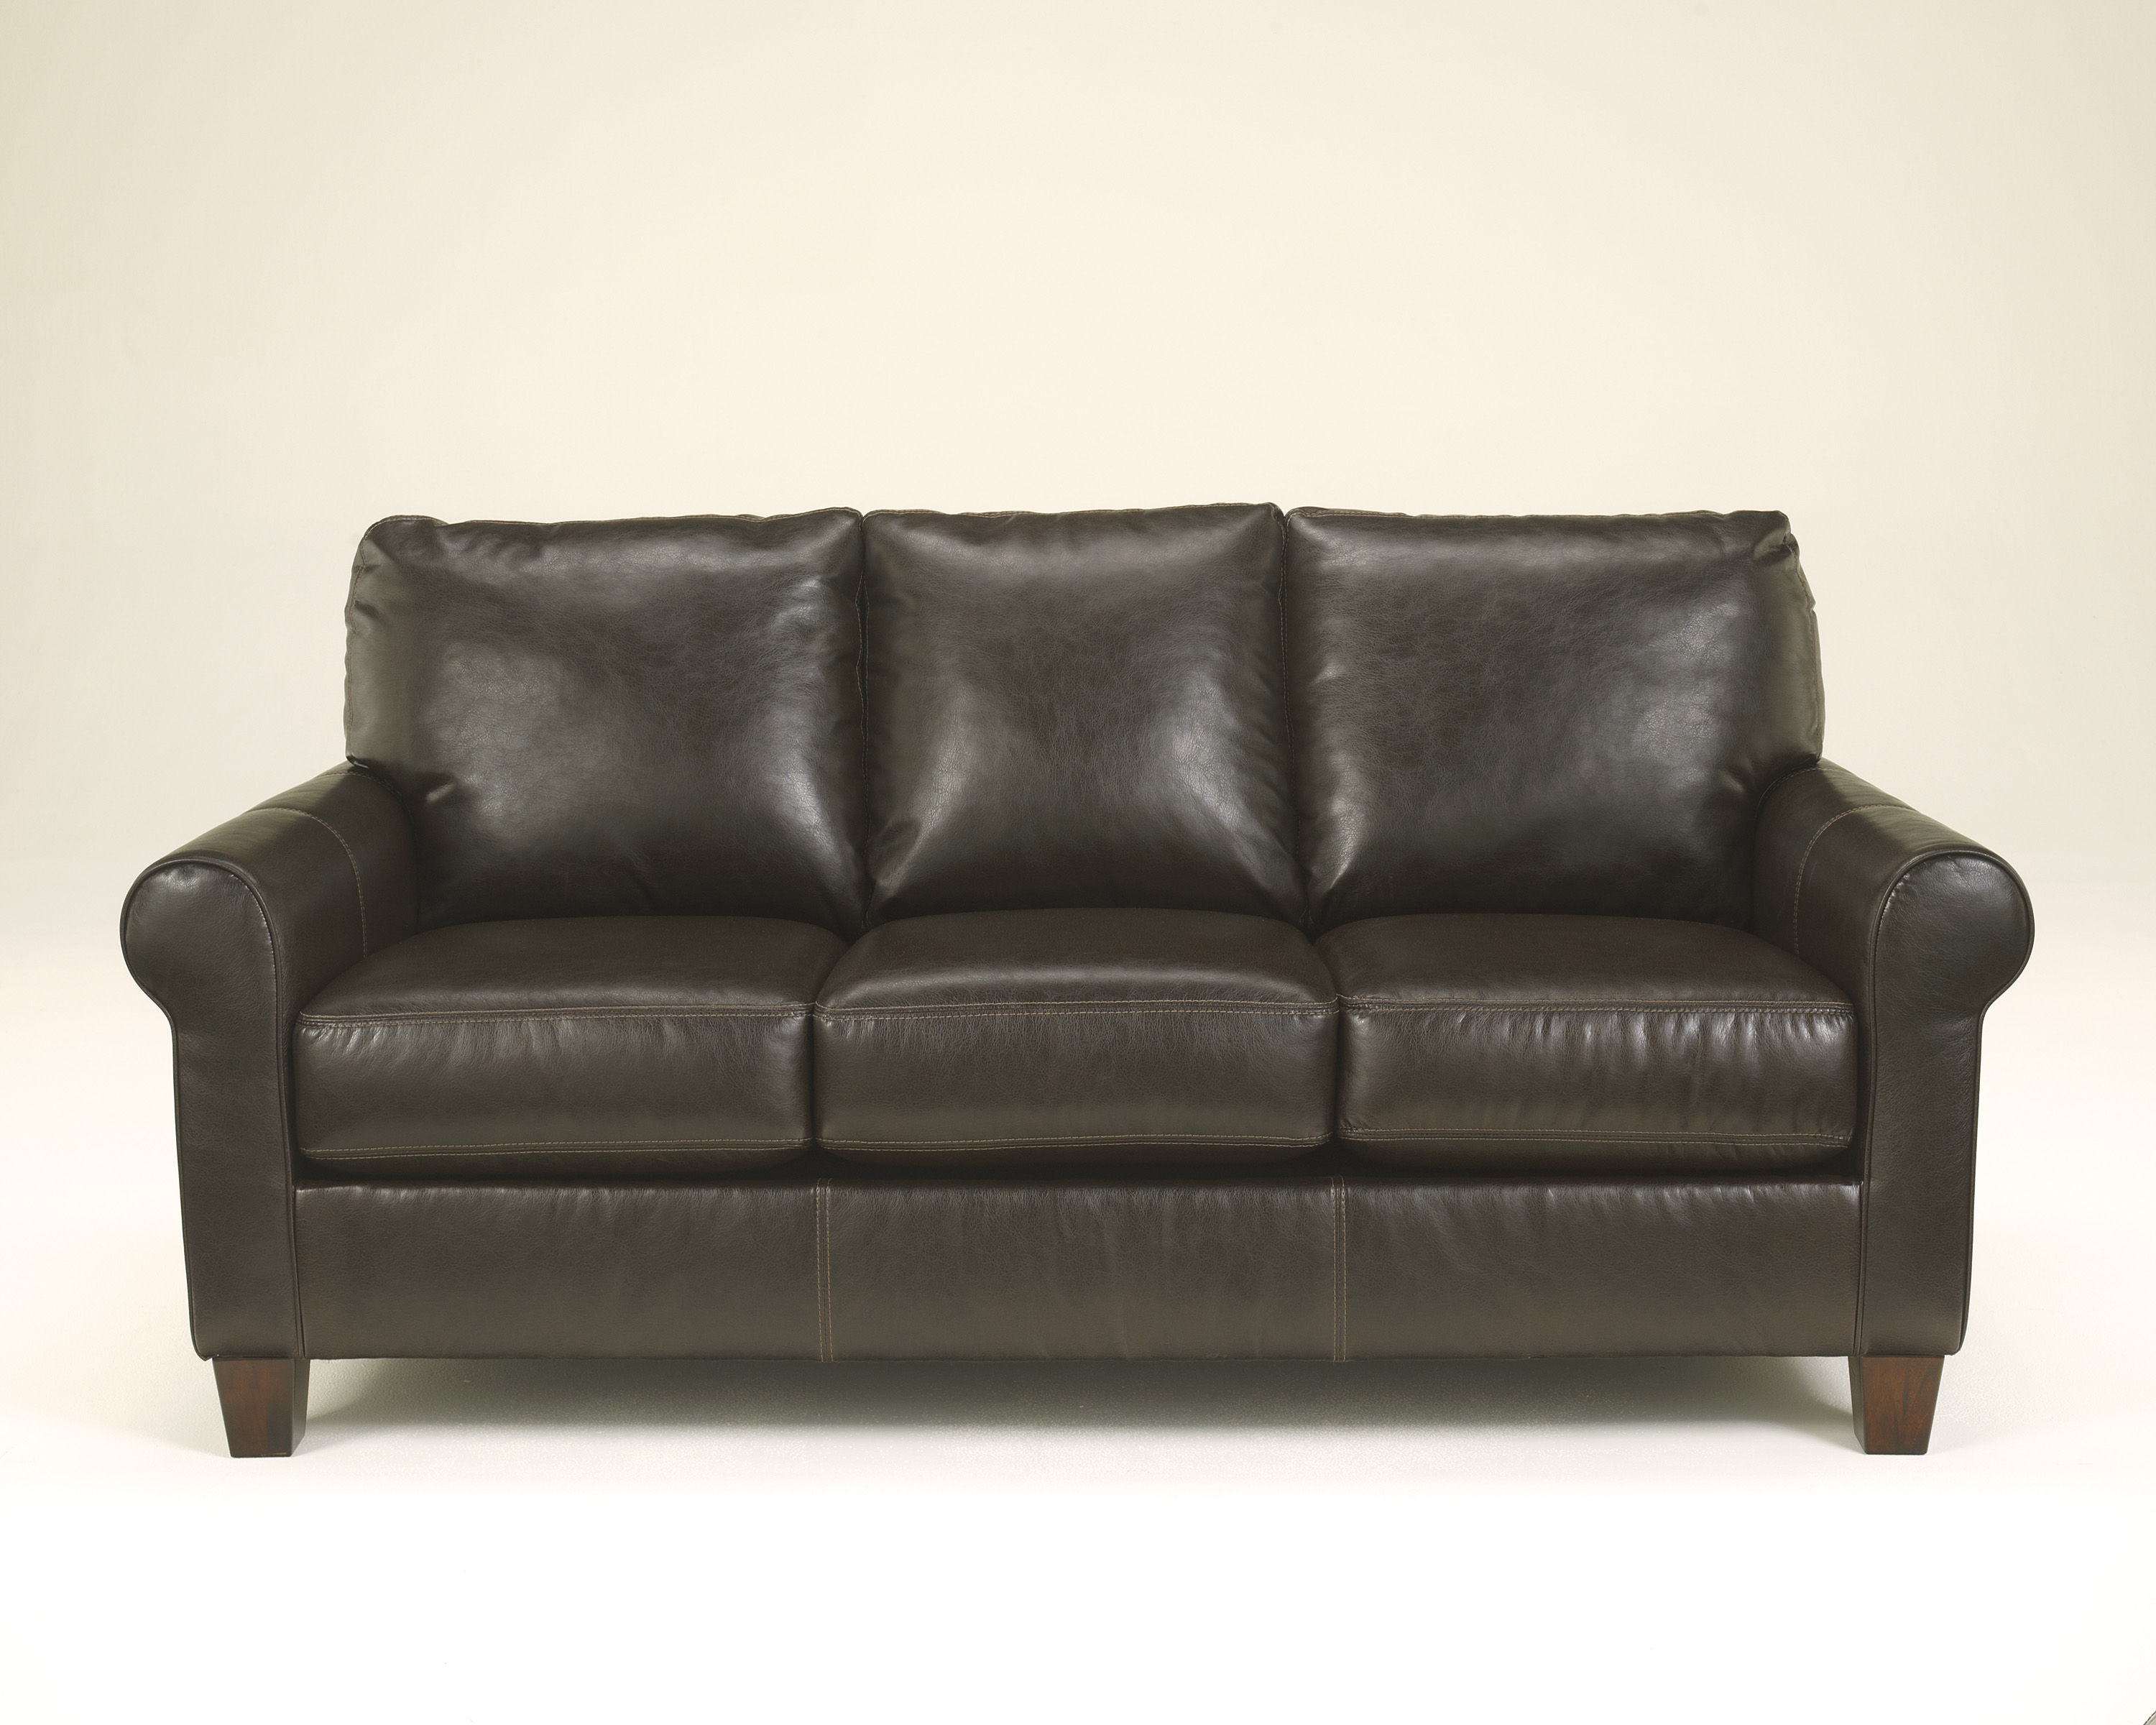 Nastas Durablend Bark Leather Polyurethane Sofa The Classy Home